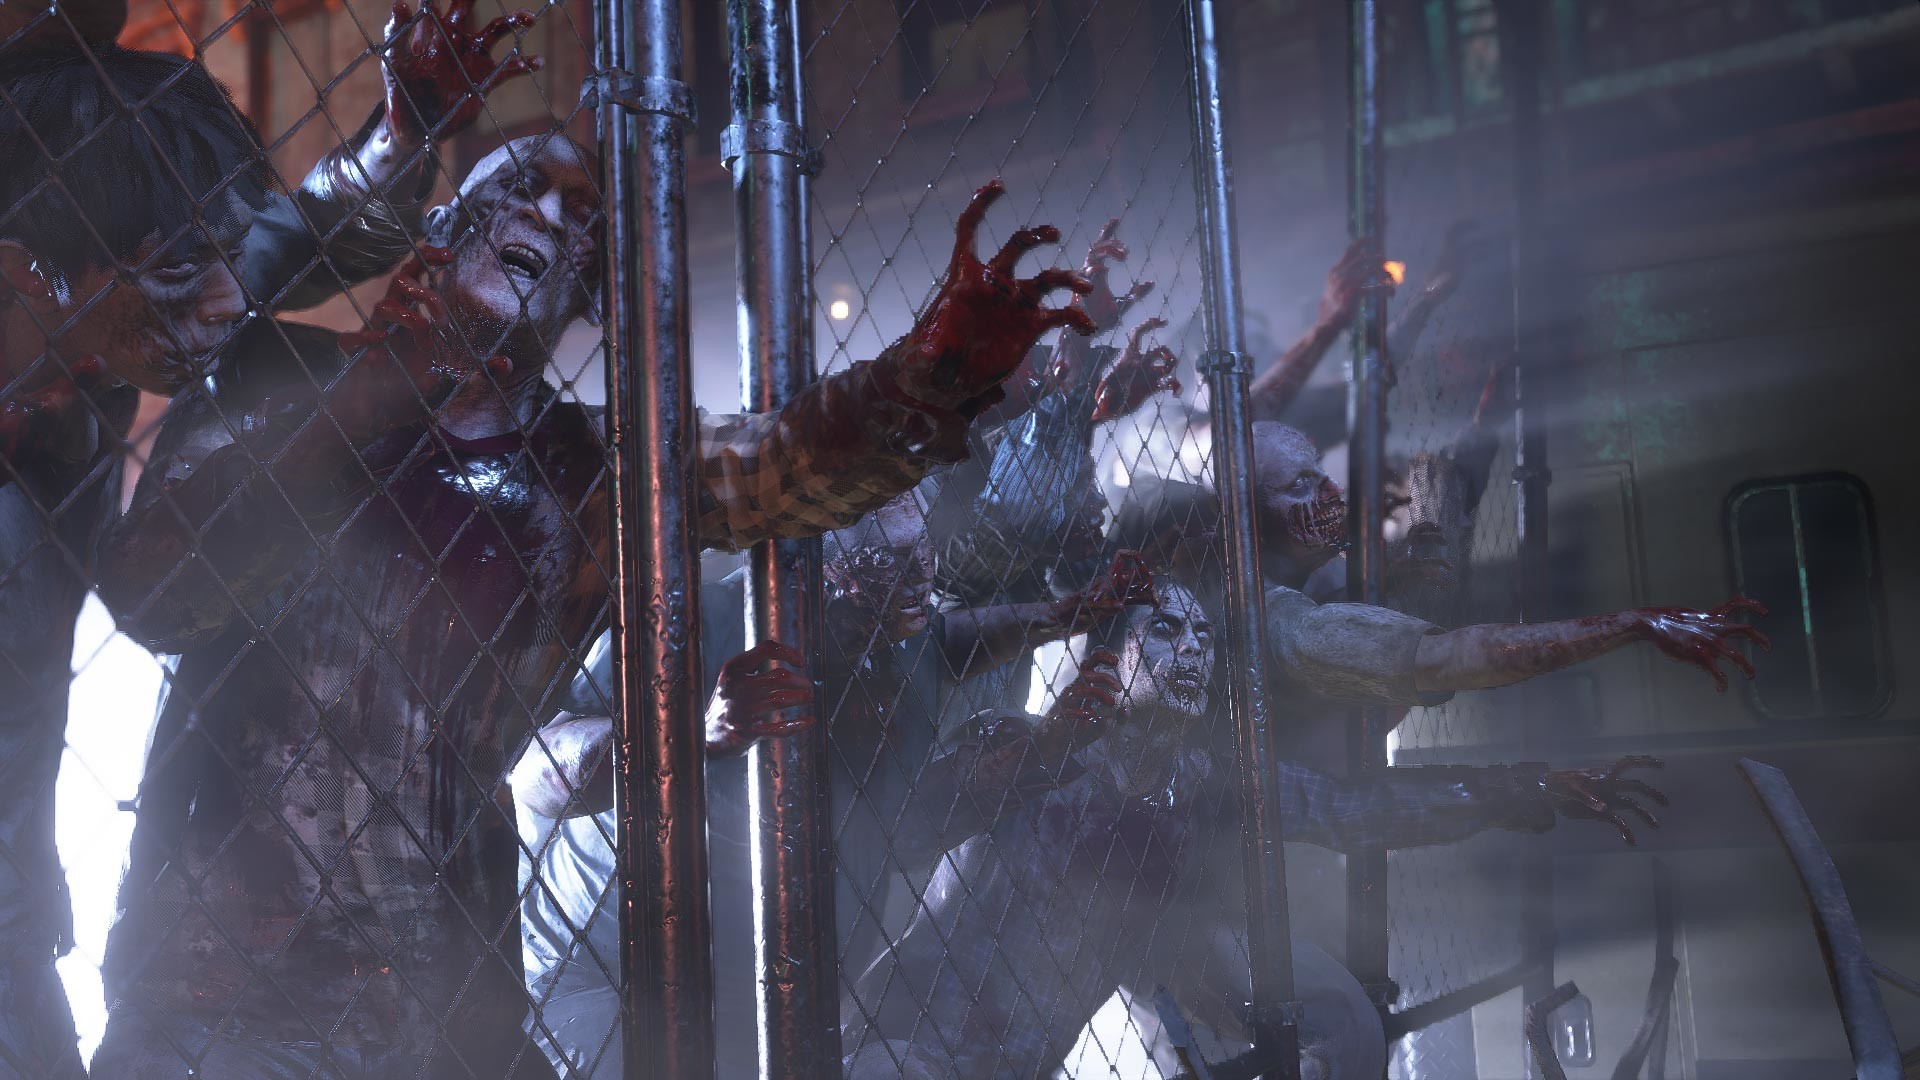 T-Virus infected zombies in the Resident Evil 3 remake